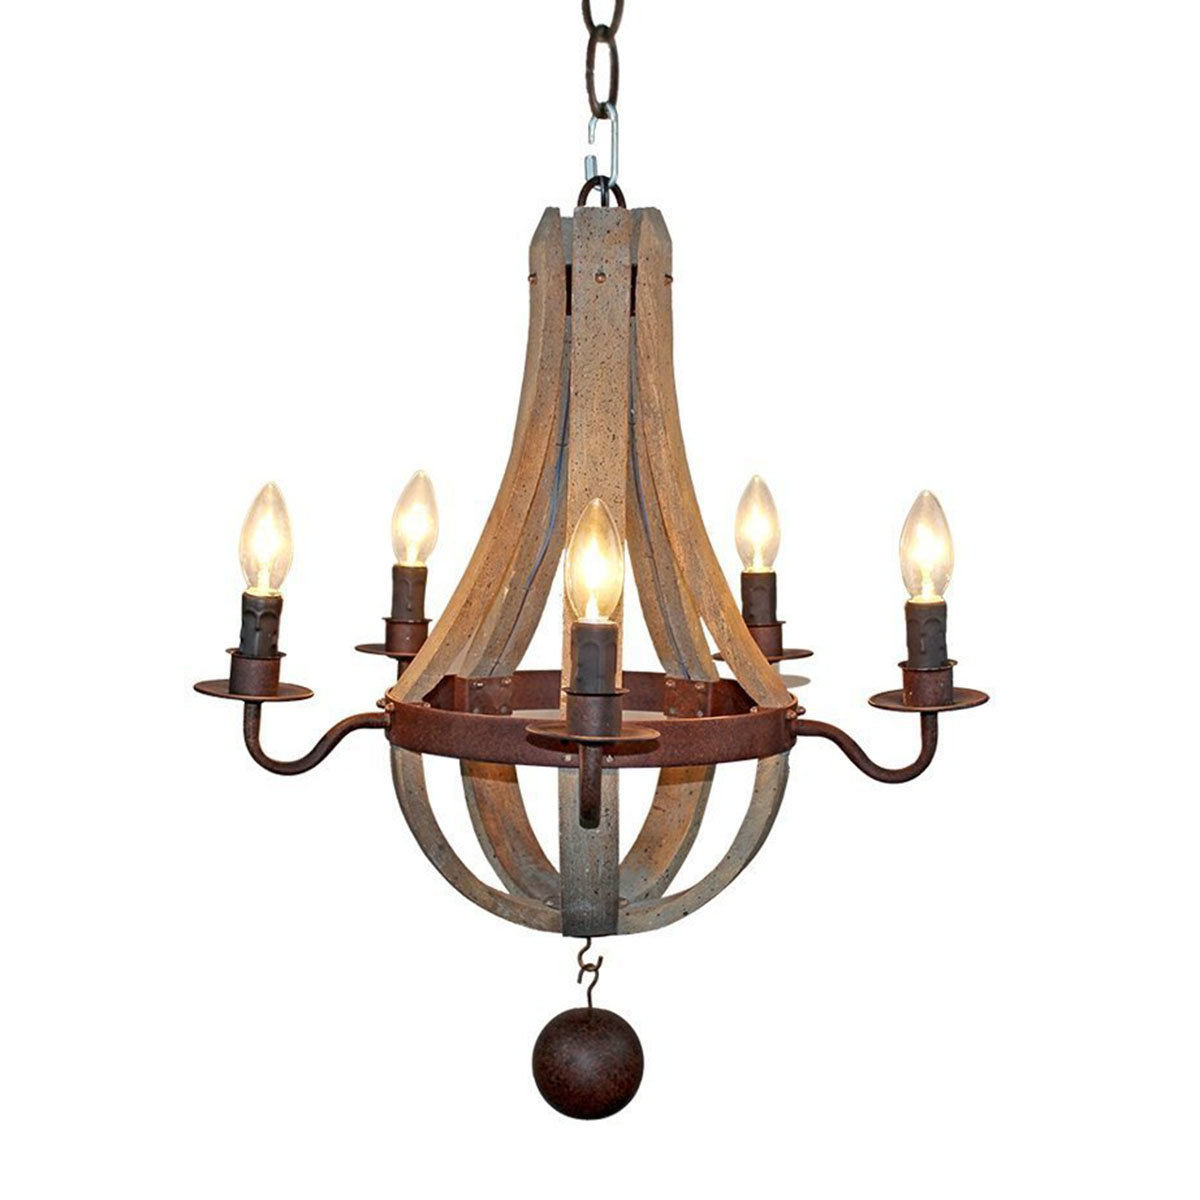 2020 Amata Flask Shape 5 Light Empire Chandelier With Kenna 5 Light Empire Chandeliers (View 1 of 25)